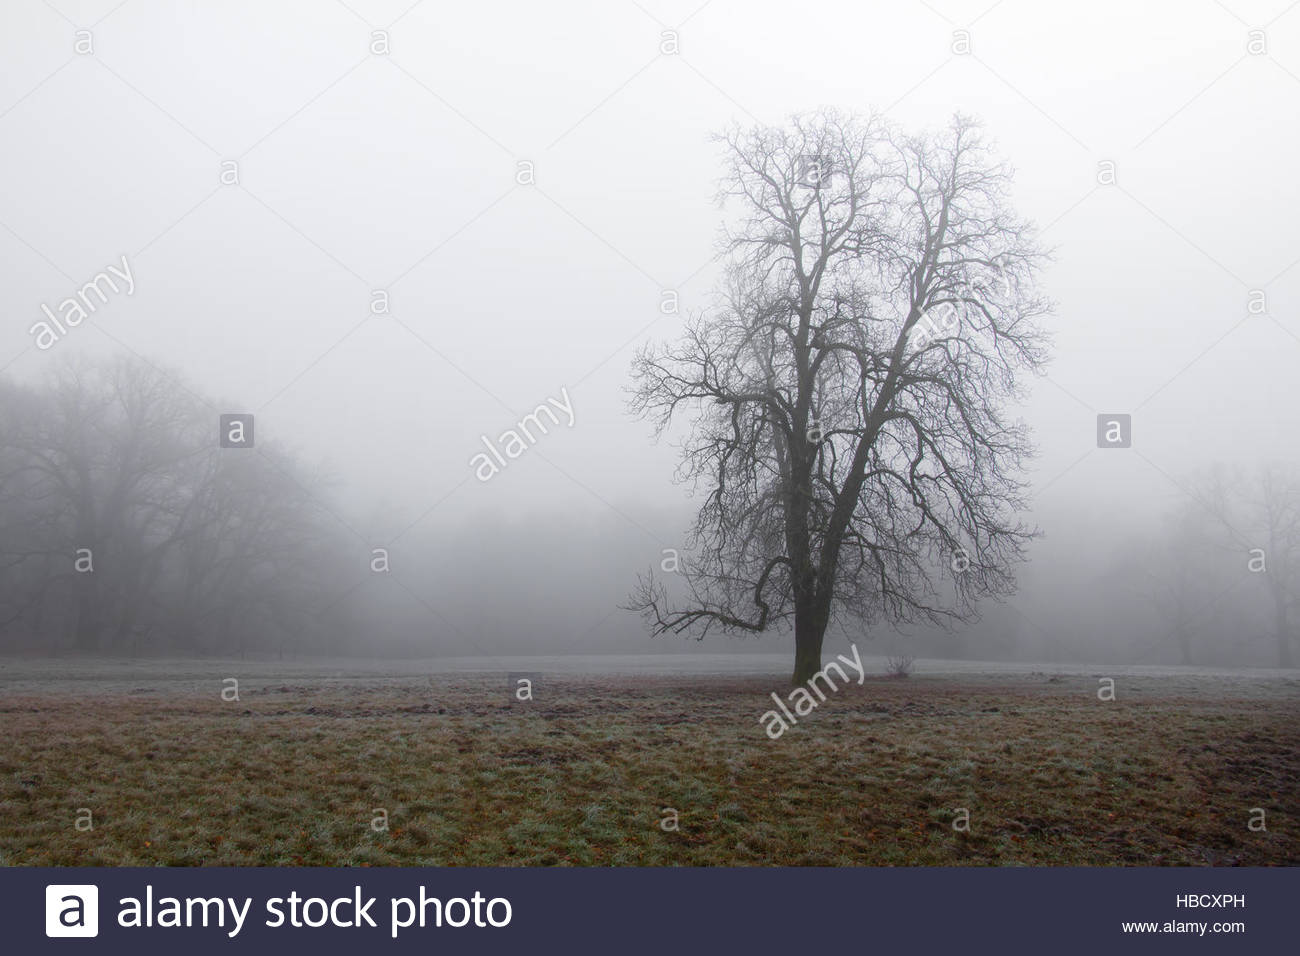 Volkspark Gienicke, Berlin city park in fall, foggy, misty weather foggy day, moody abstract landscape foggy - Stock Image